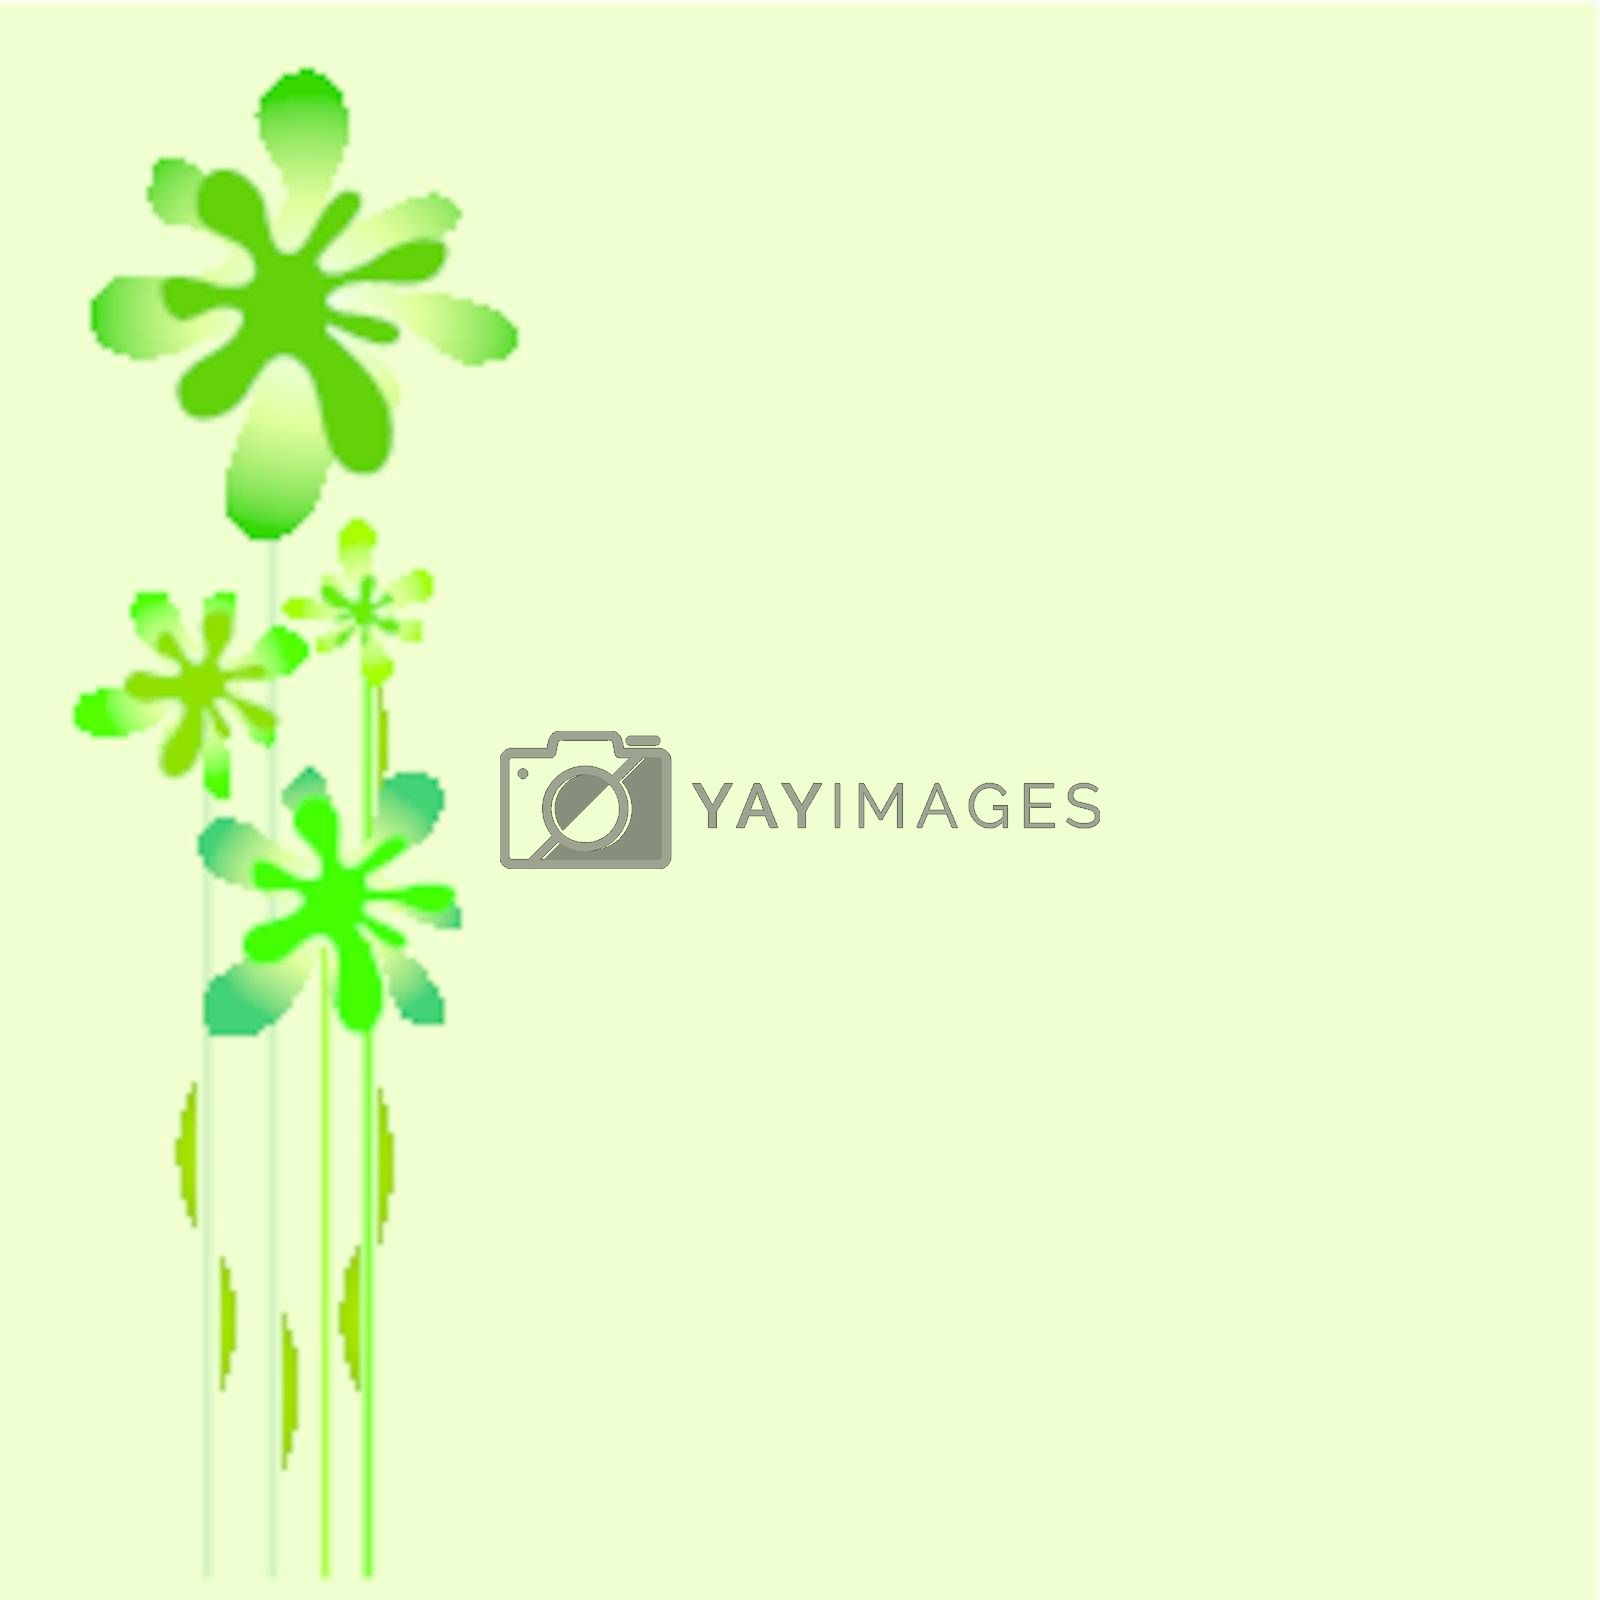 Vector drawing representing flowers or green leaves